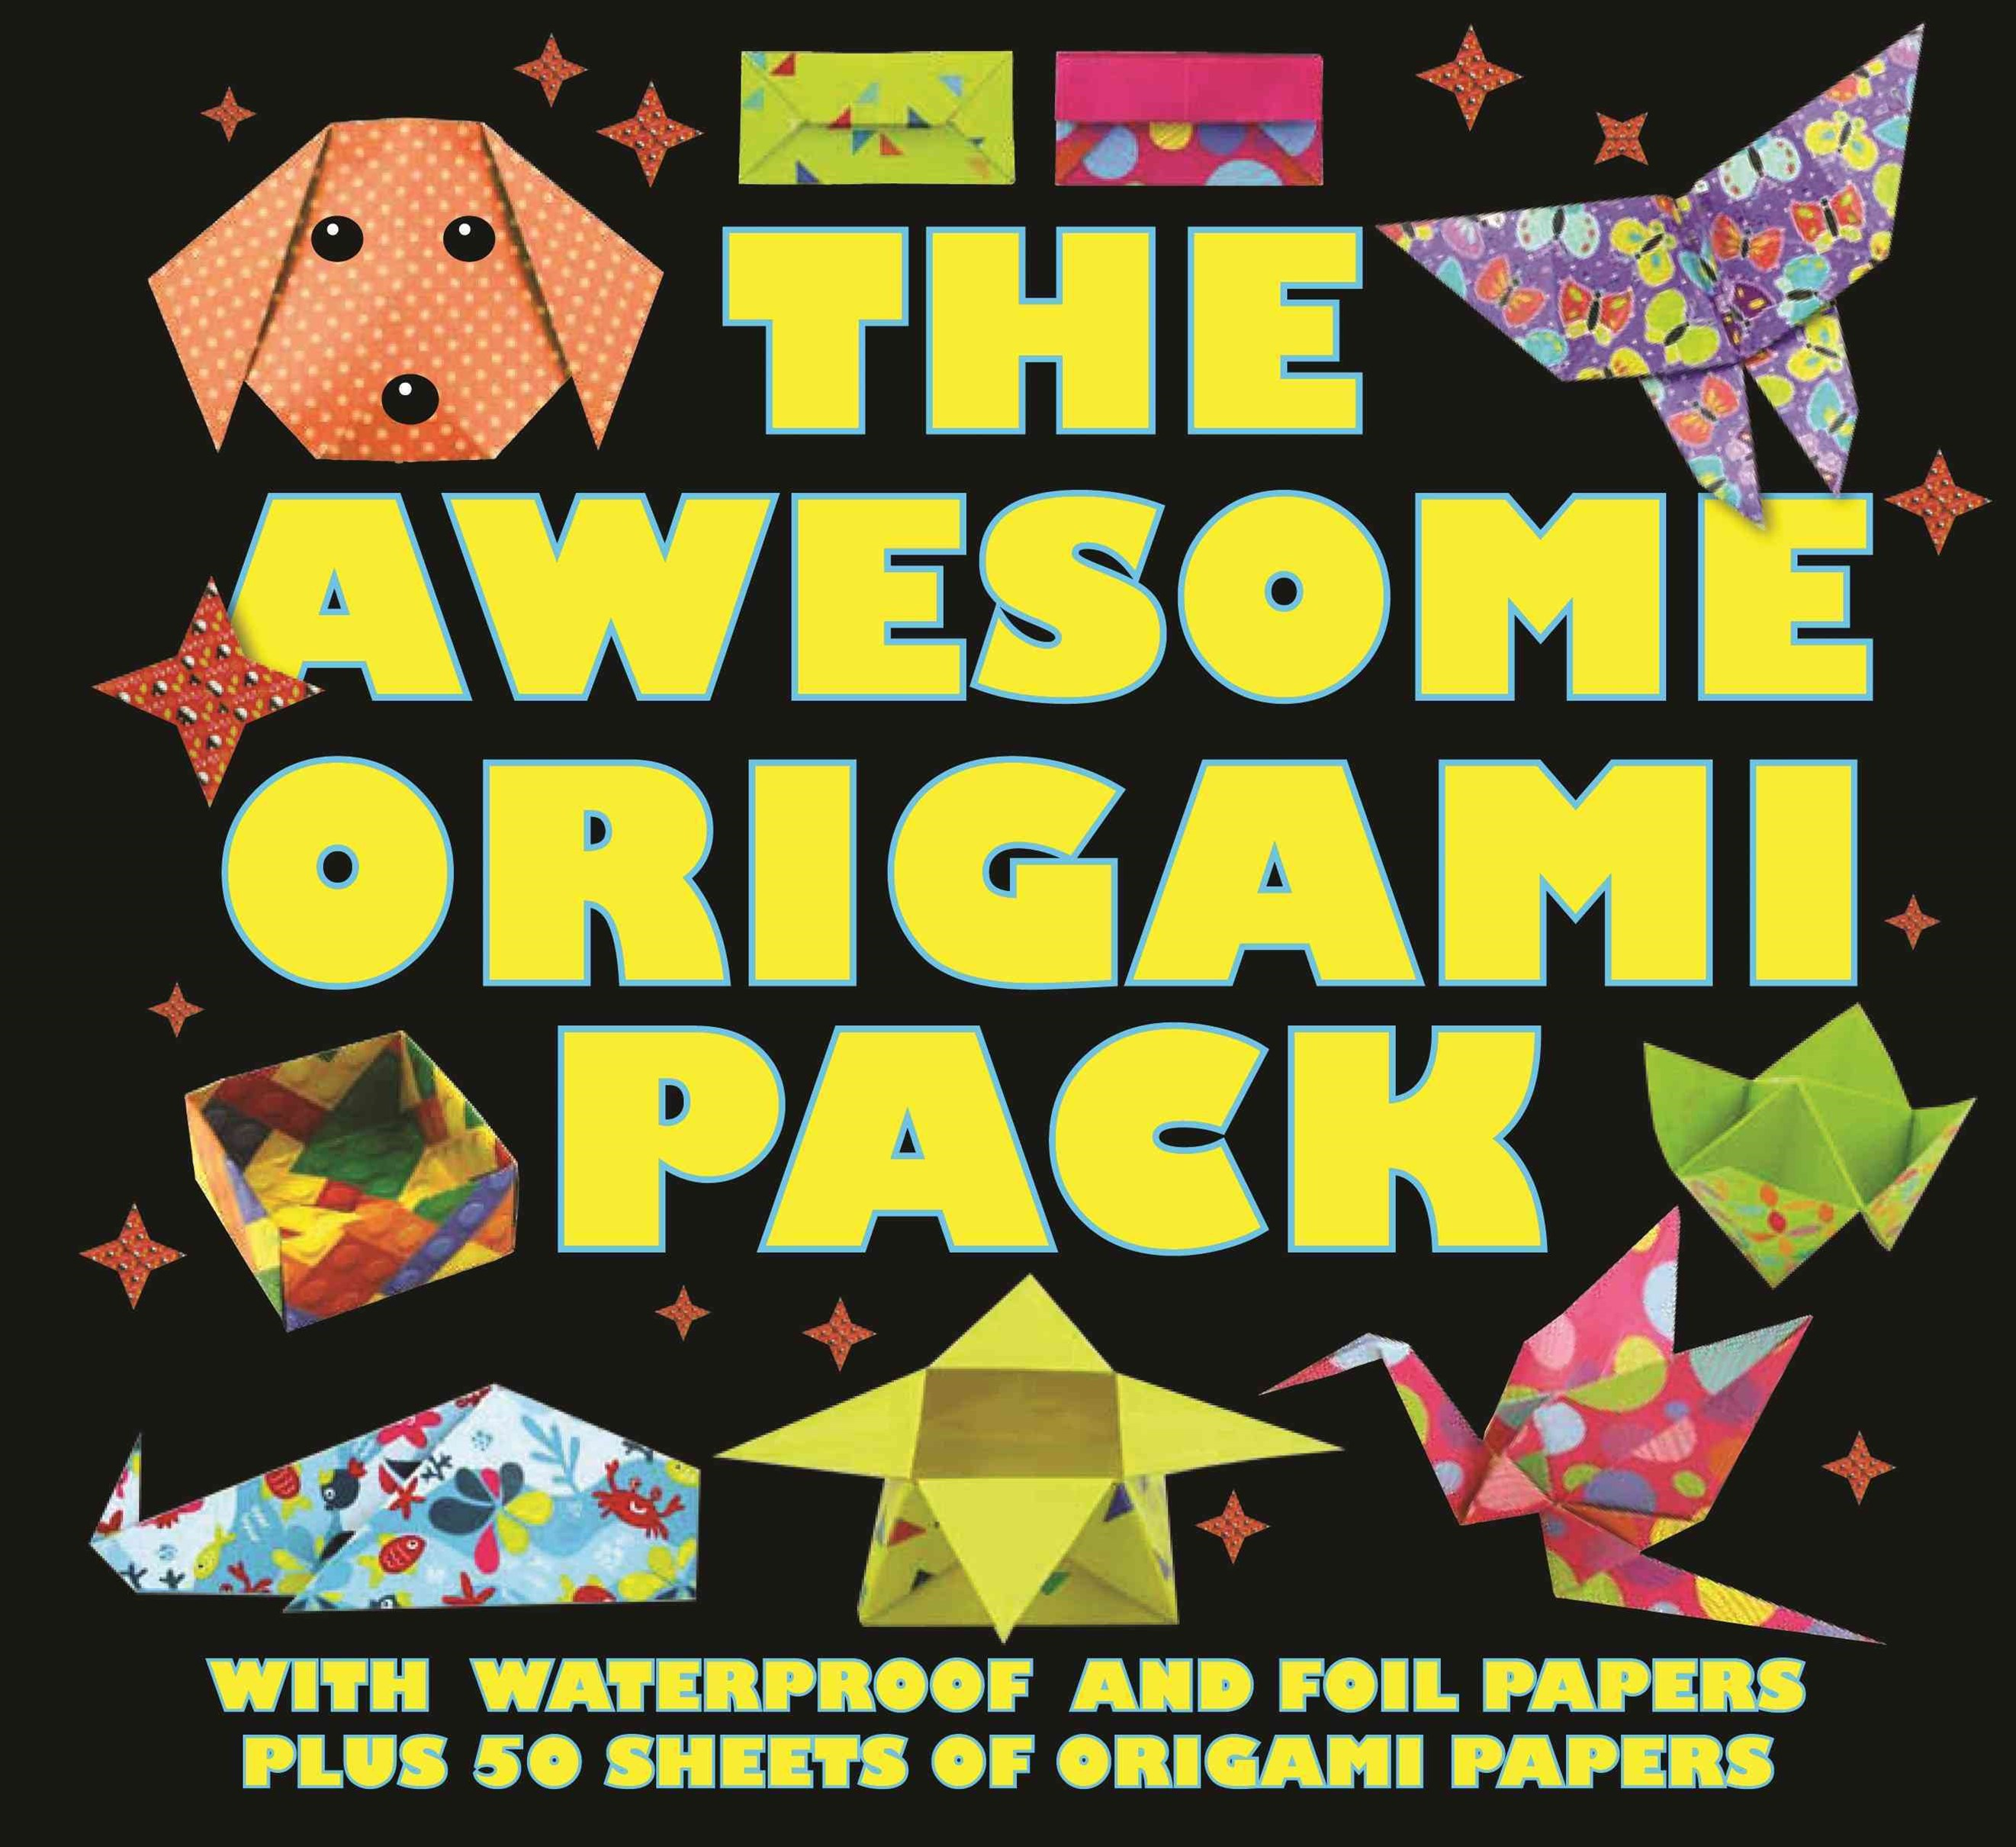 The Awesome Origami Pack